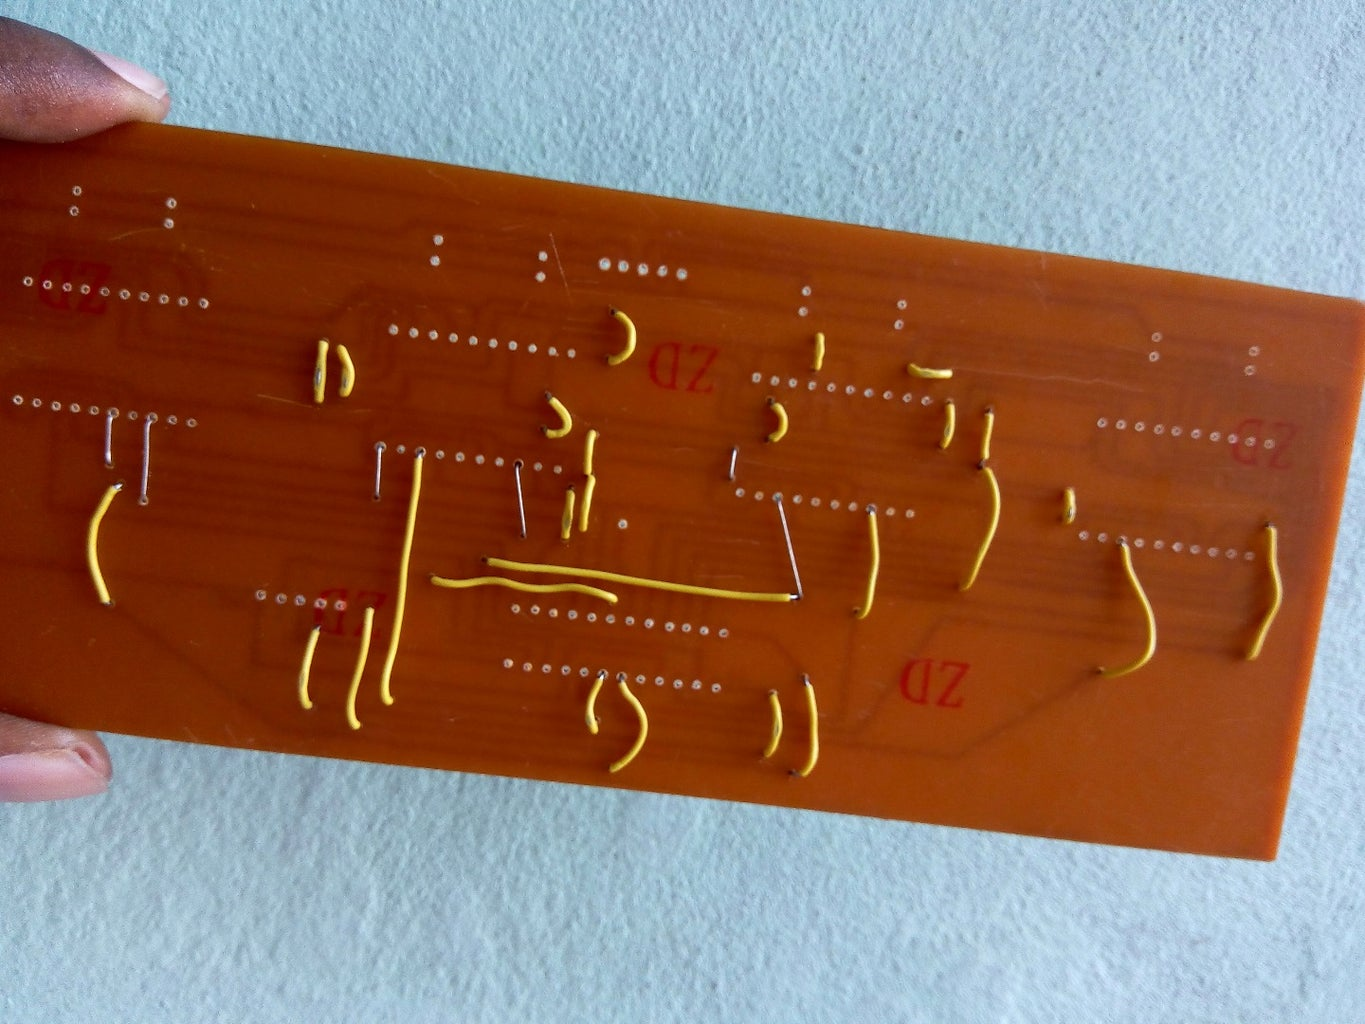 Solder All the Components